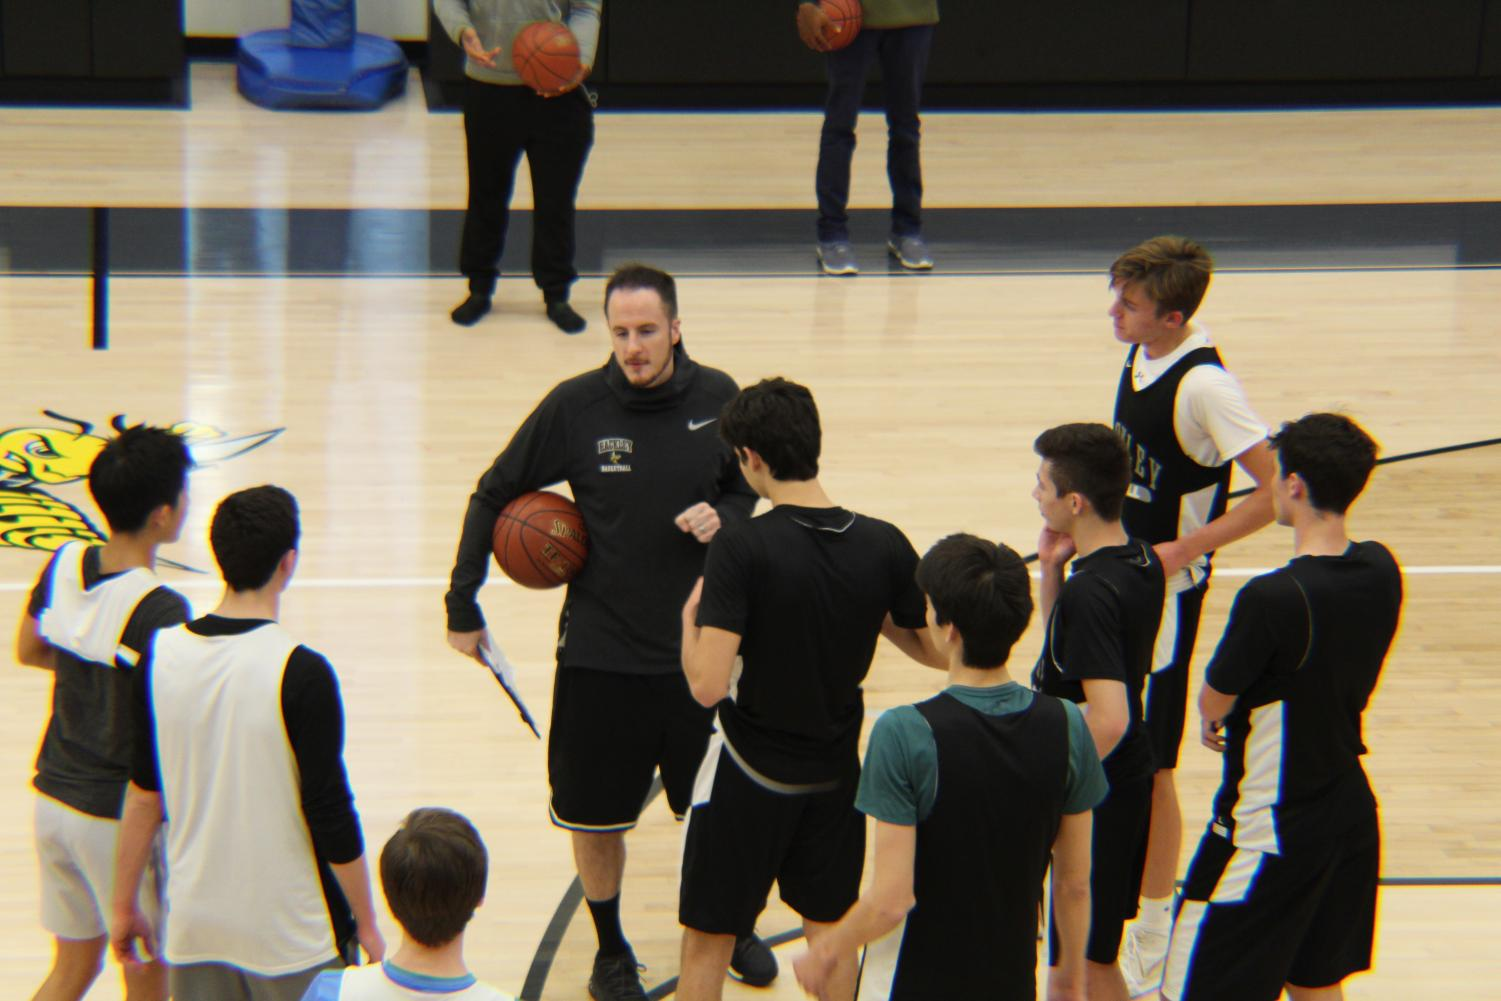 Coach Kuba explains a drill to the team. He emphasizes quick ball movement to the team in practice. This is Coach Kuba's first season coaching the boys' varsity basketball team.